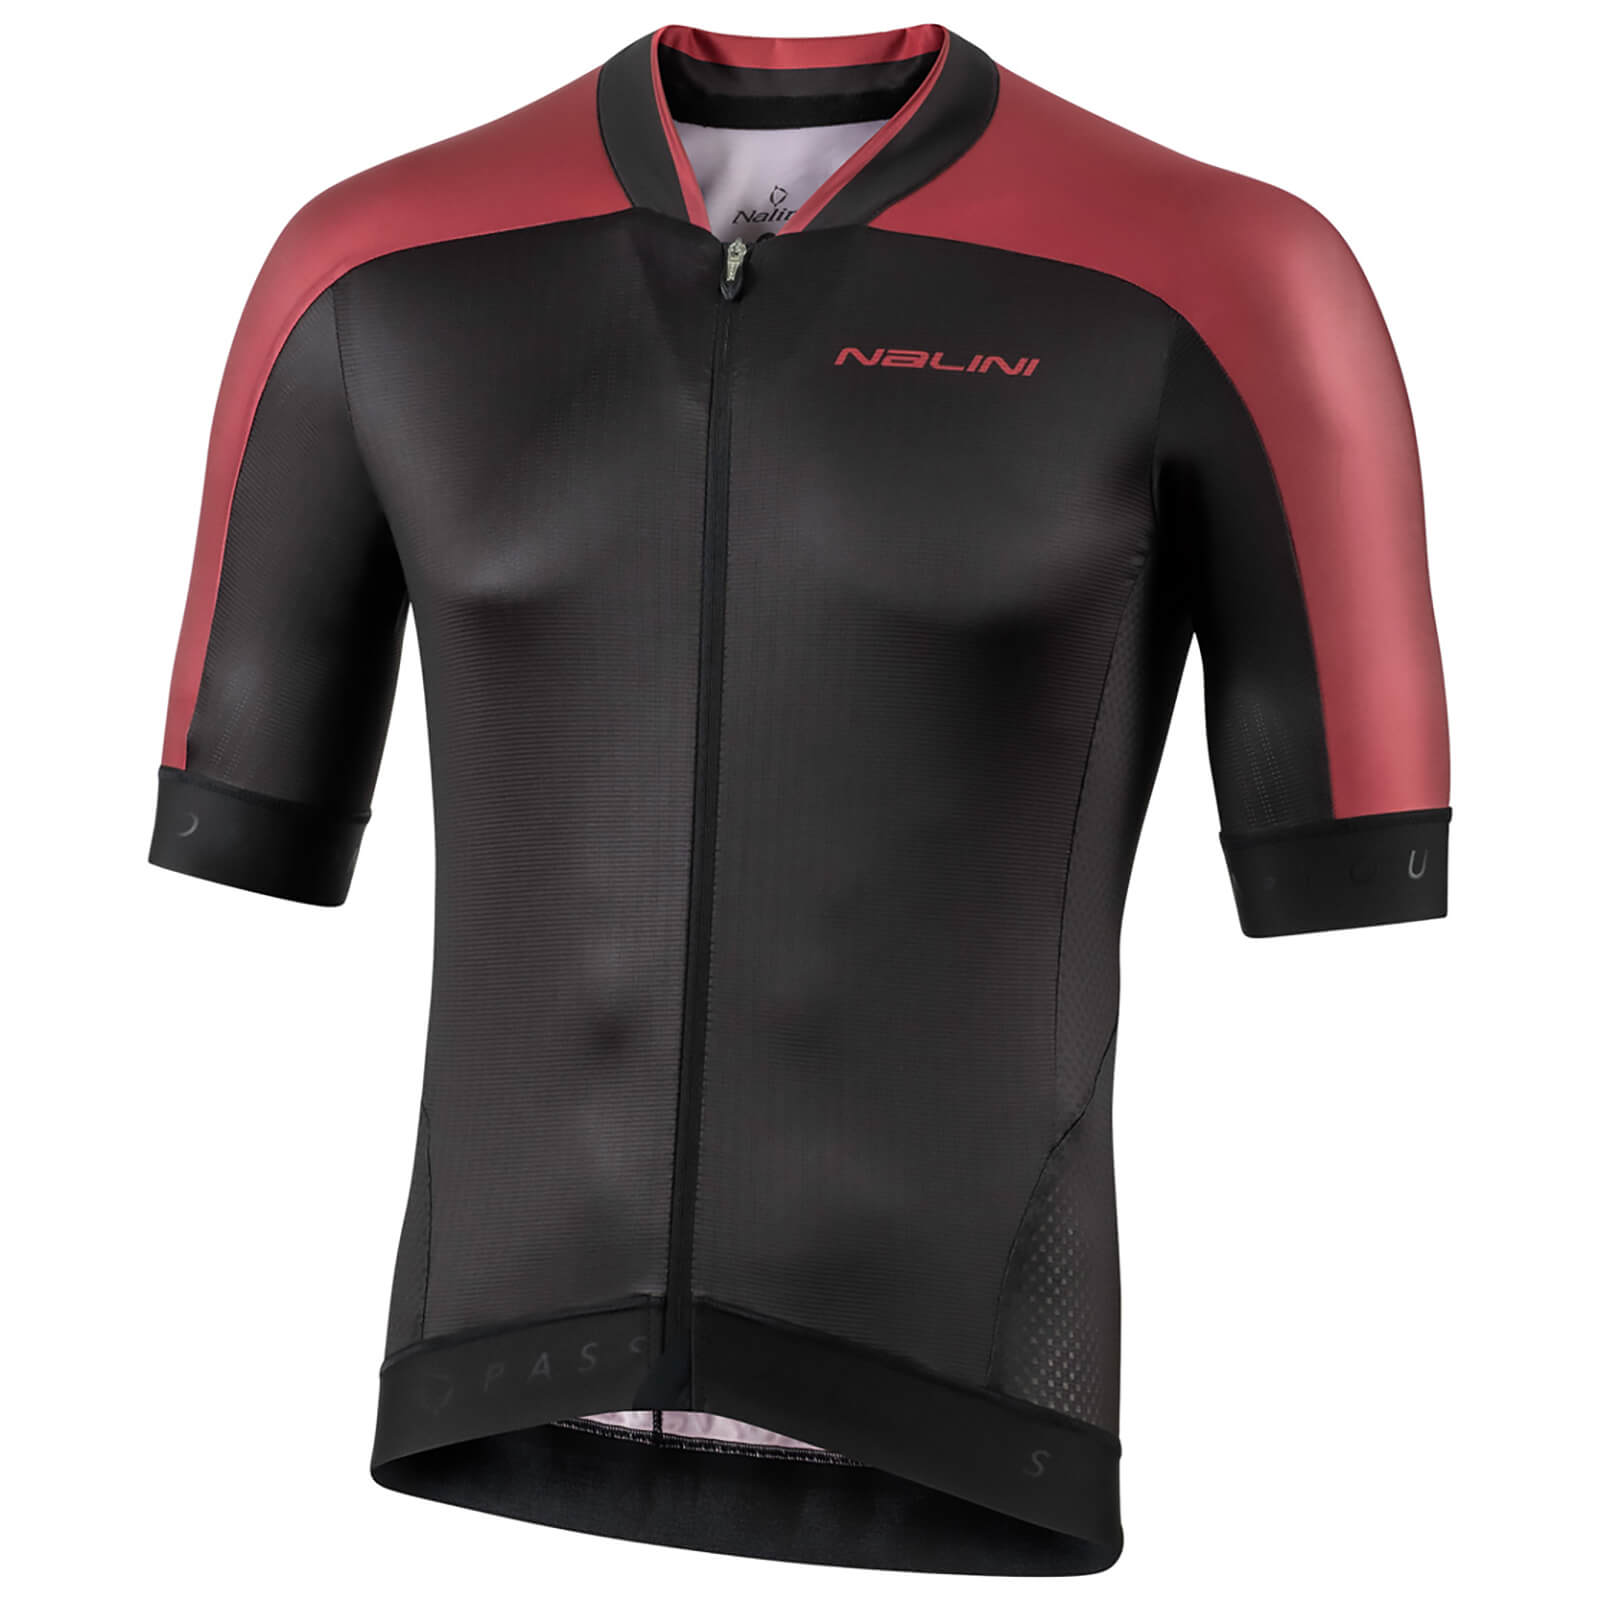 Nalini Munich 1972 Jersey - S - Black/Red